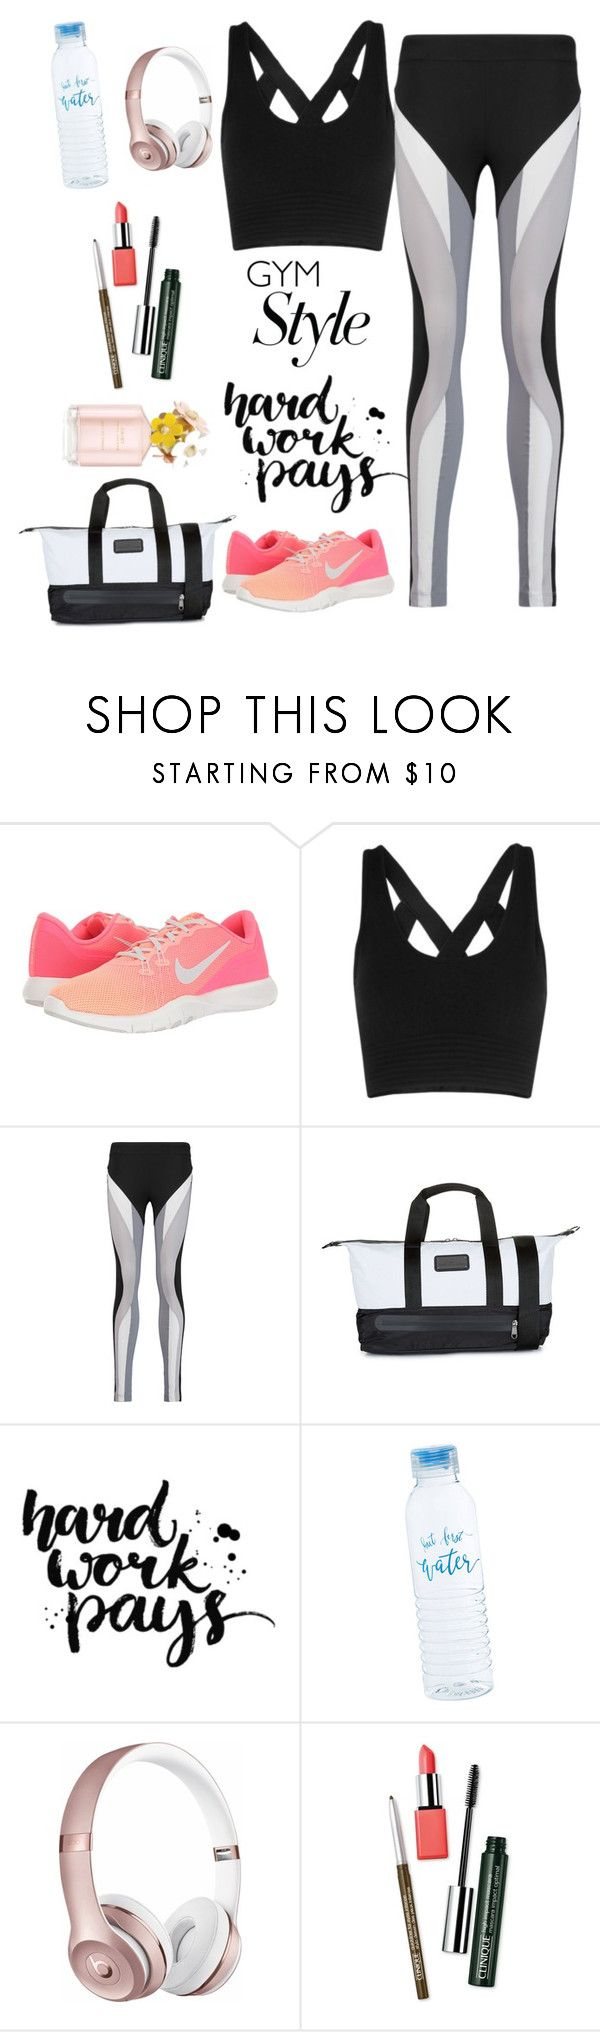 """Gym"" by putrinaini on Polyvore featuring NIKE, No Ka'Oi, adidas, Beats by Dr. Dre, Clinique and Marc Jacobs"